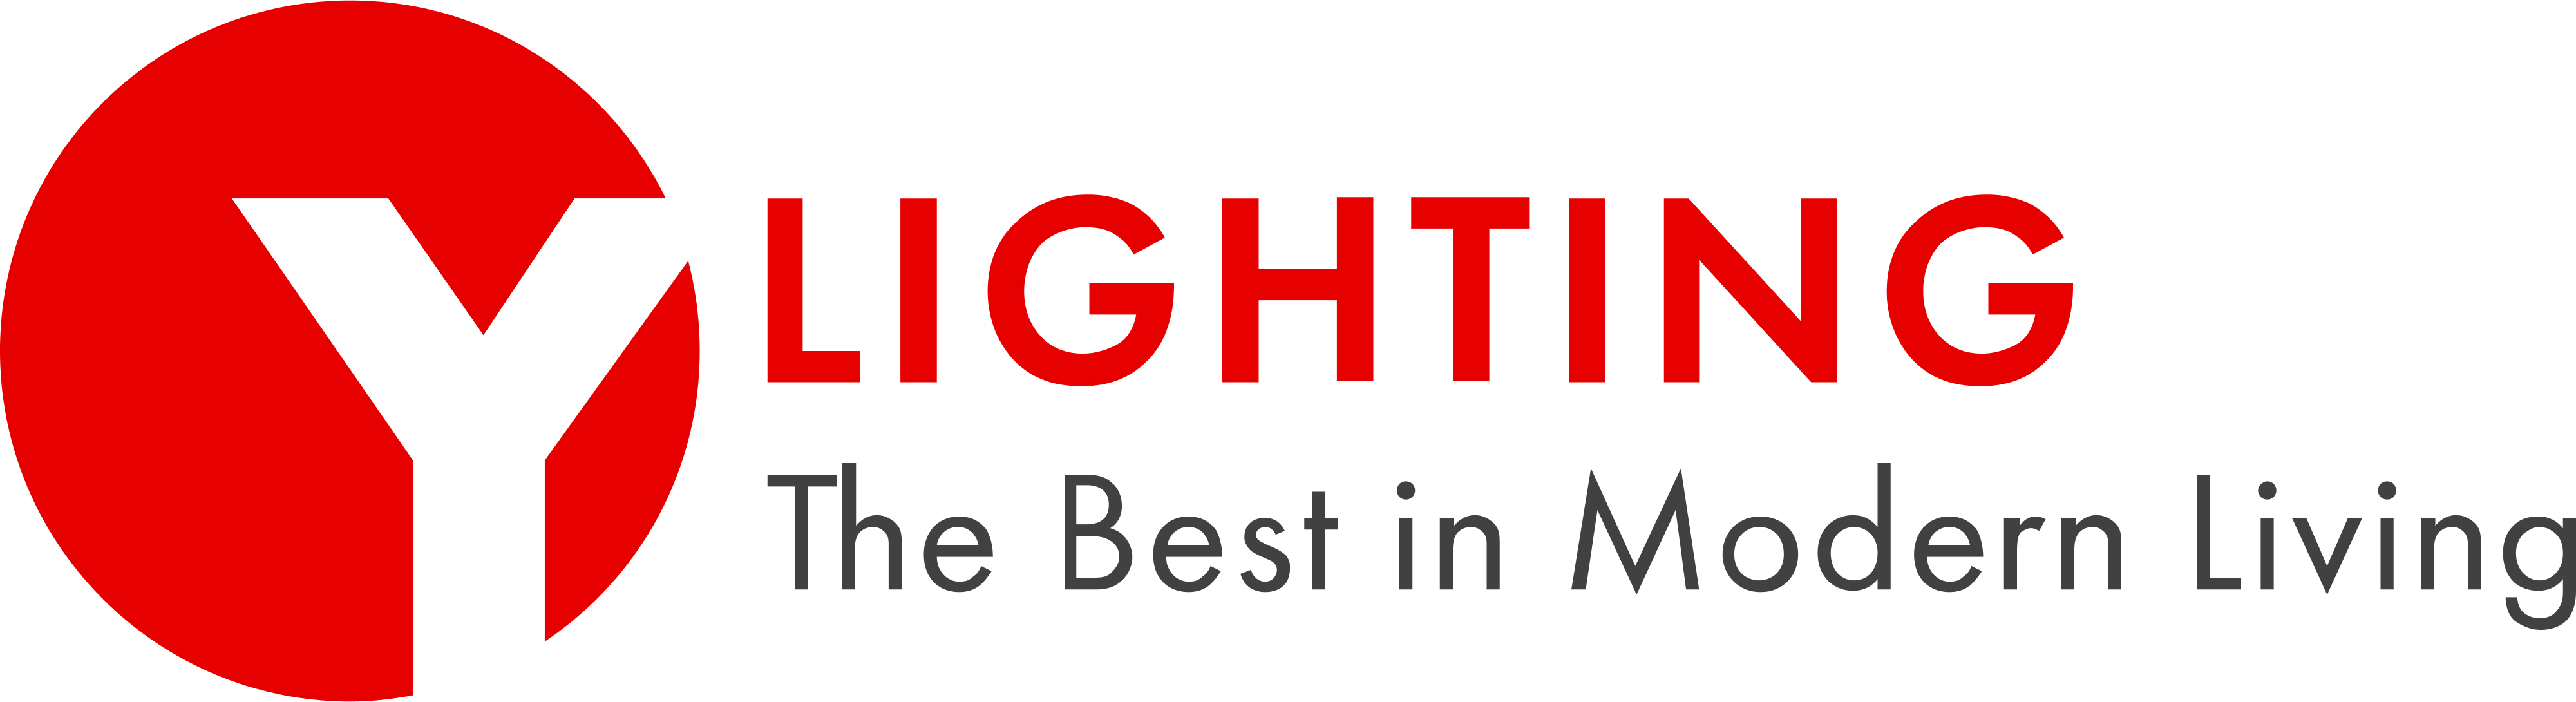 YLighting The Best in Modern Living